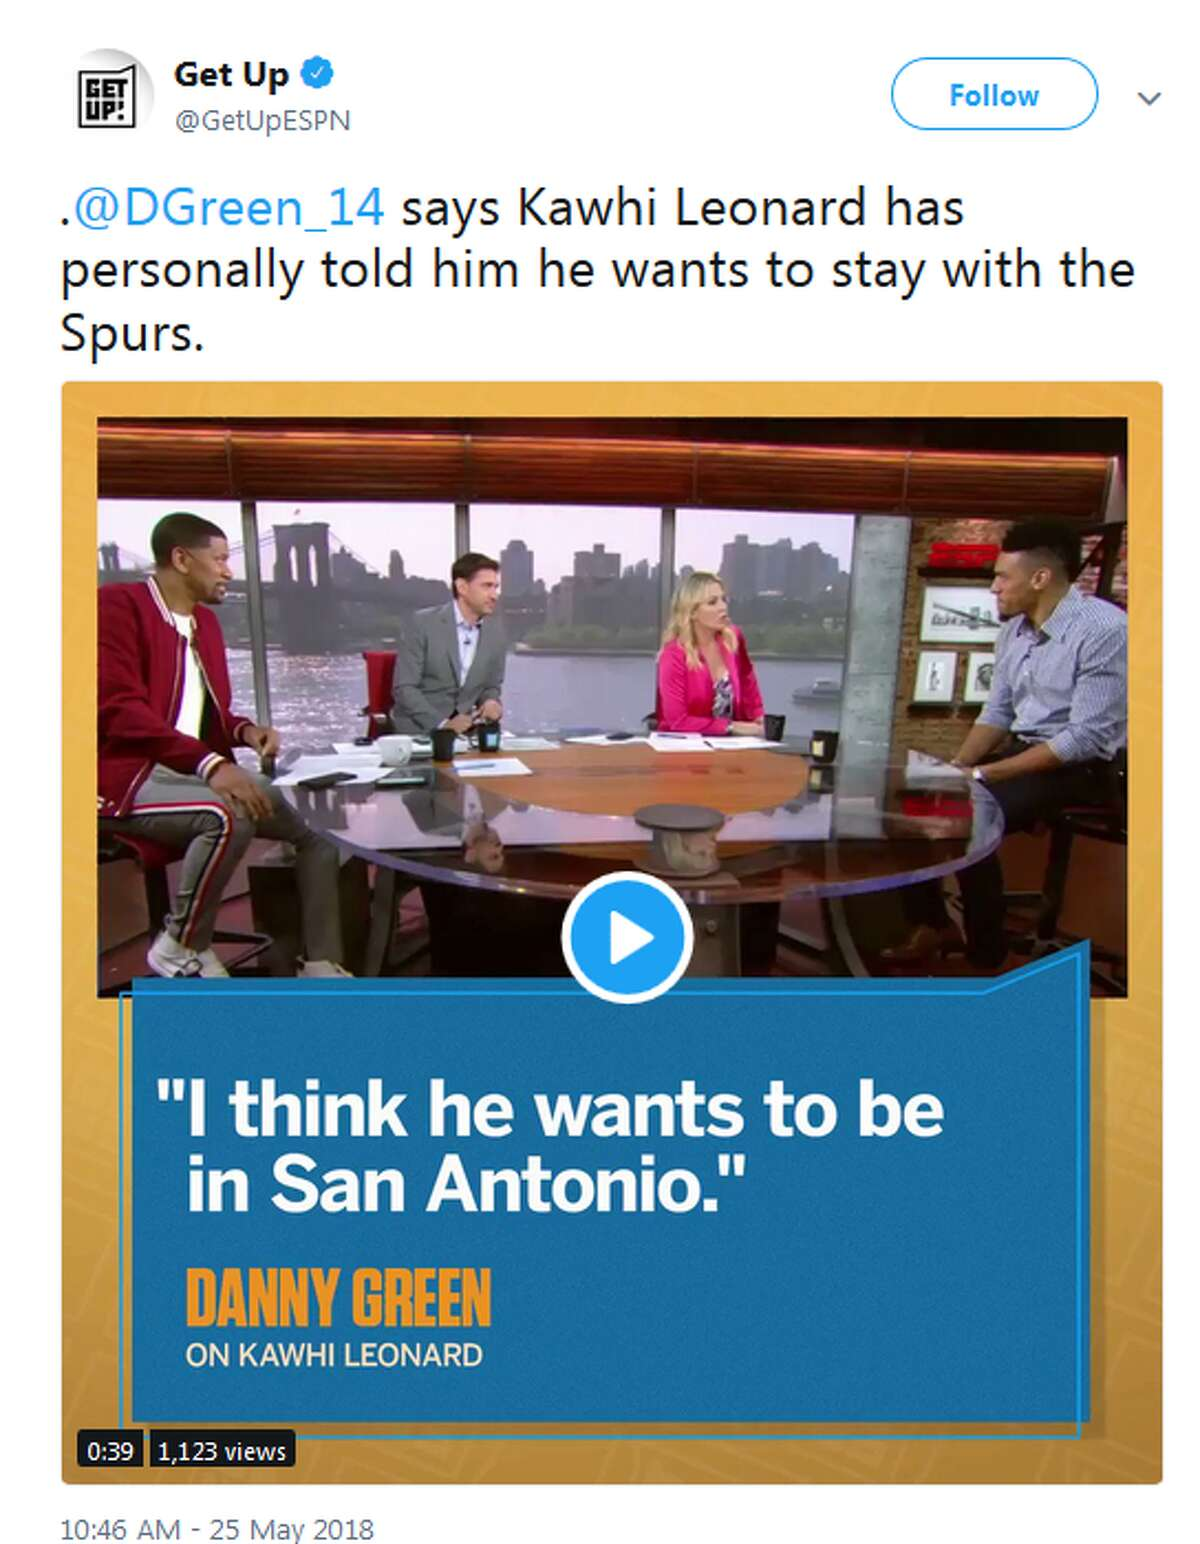 """Spurs guard Danny Green told ESPN's morning show Get Up! that he has spoken with Kawhi Leonard and though the situation is """"up in the air,"""" he told him he wants to stay in San Antonio."""